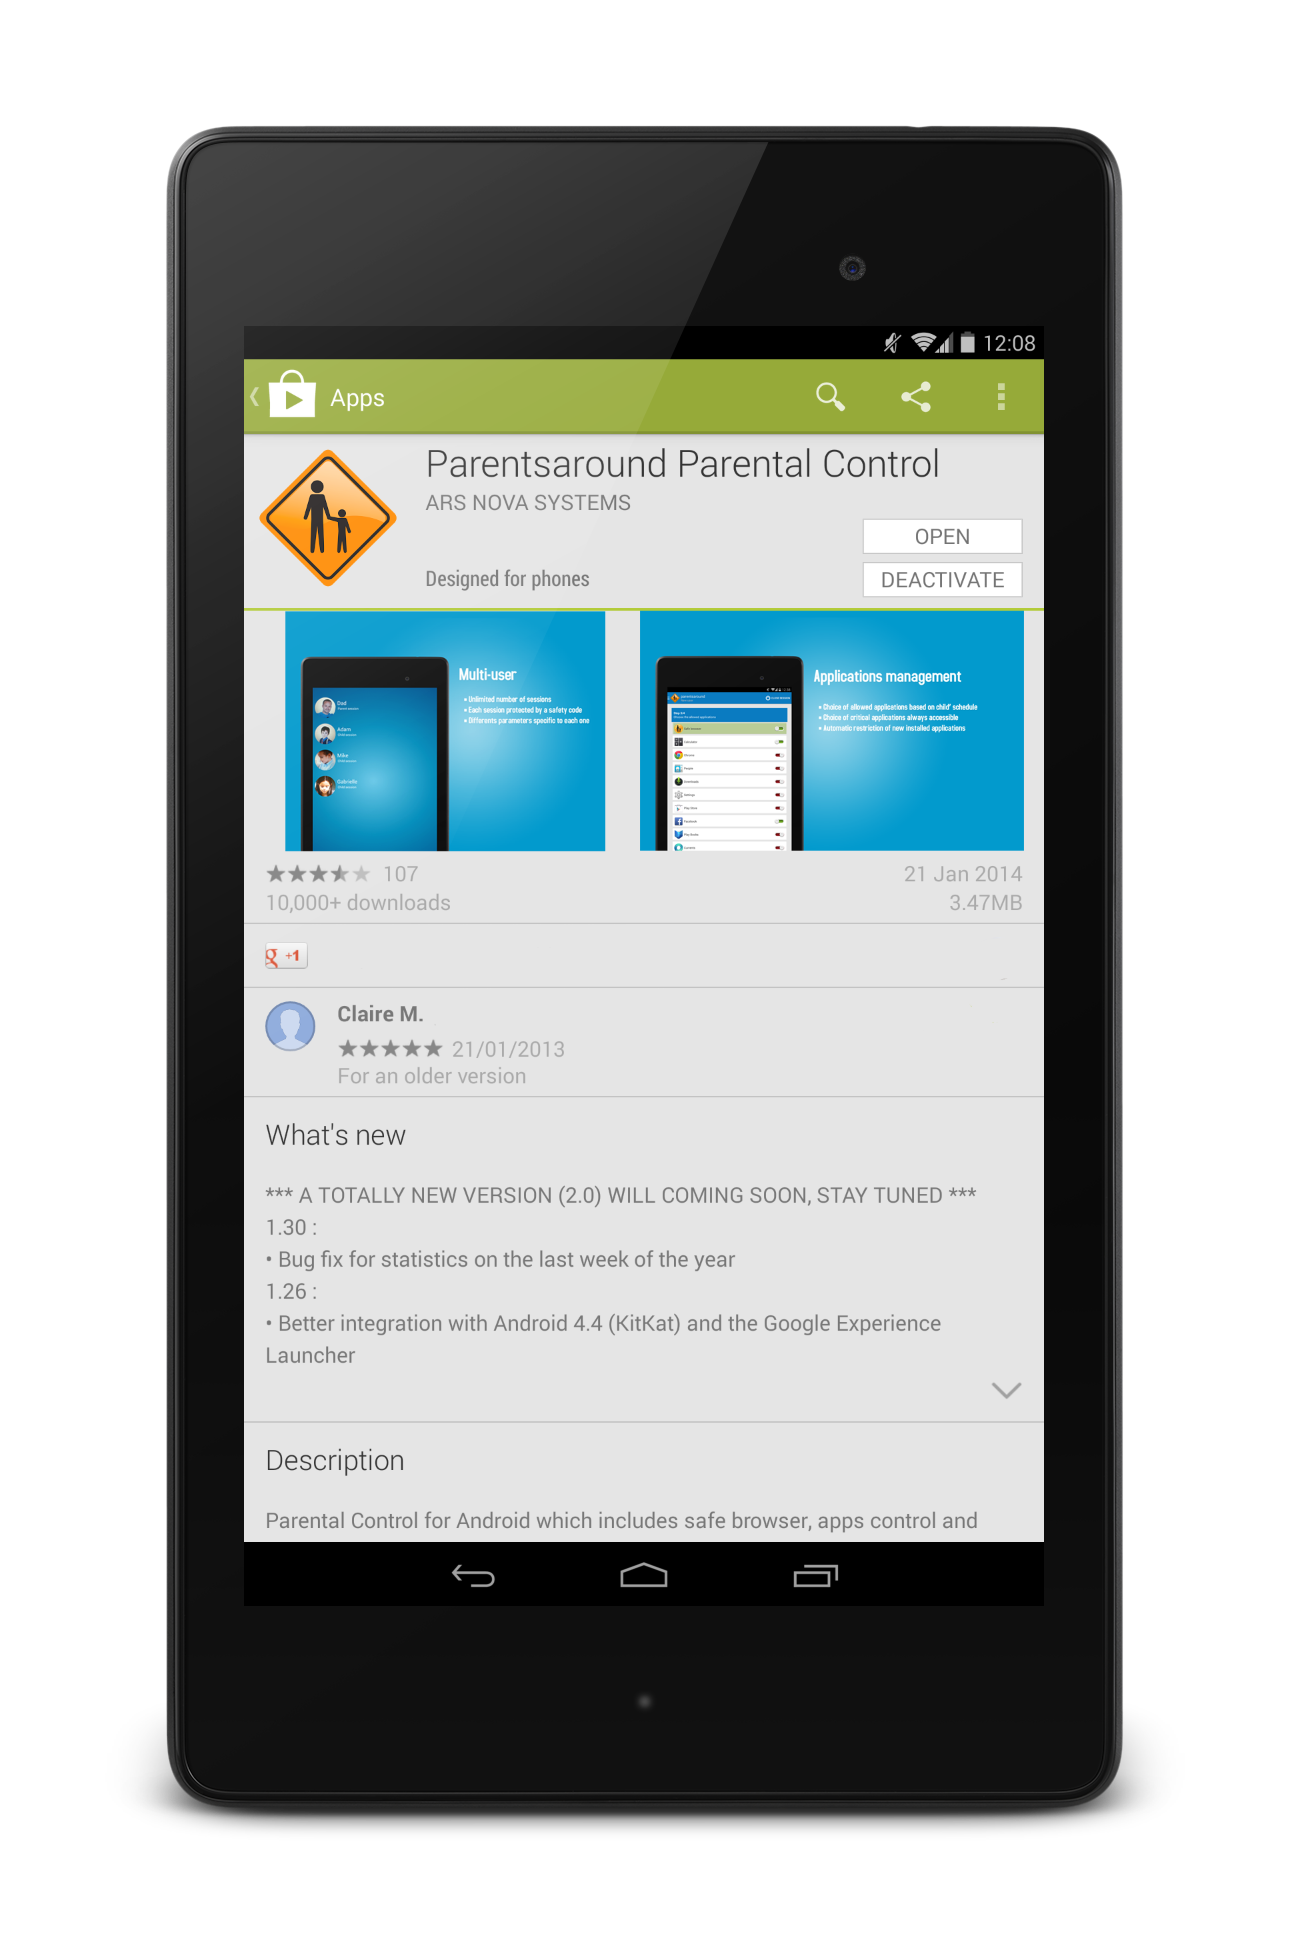 Parentsaround on Google Play